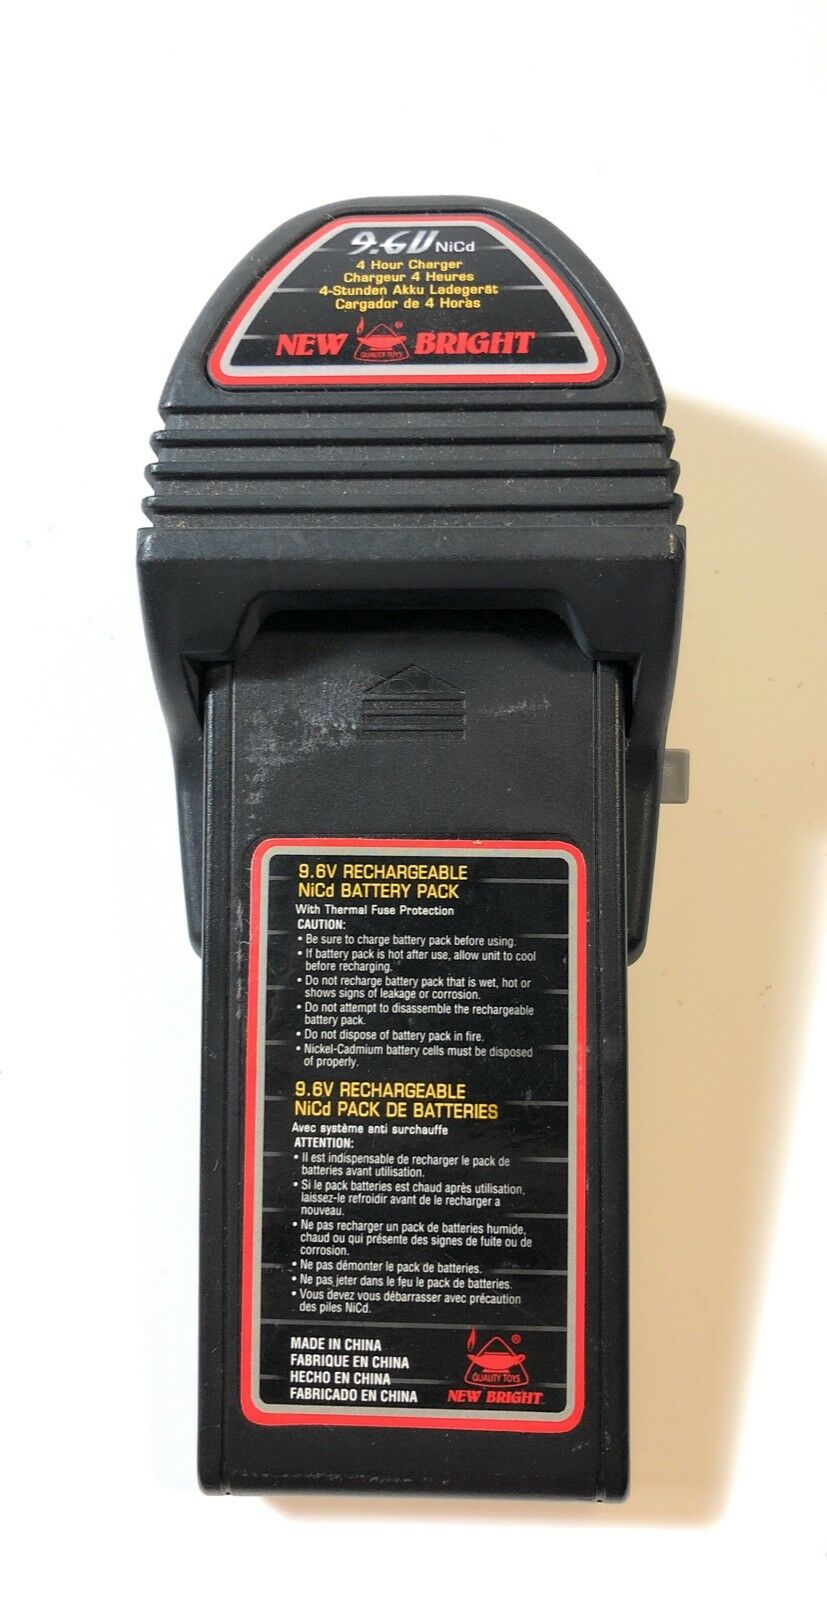 New Bright R C 9.6V Nicd Battery and Charger Combo 4 Hour Charger